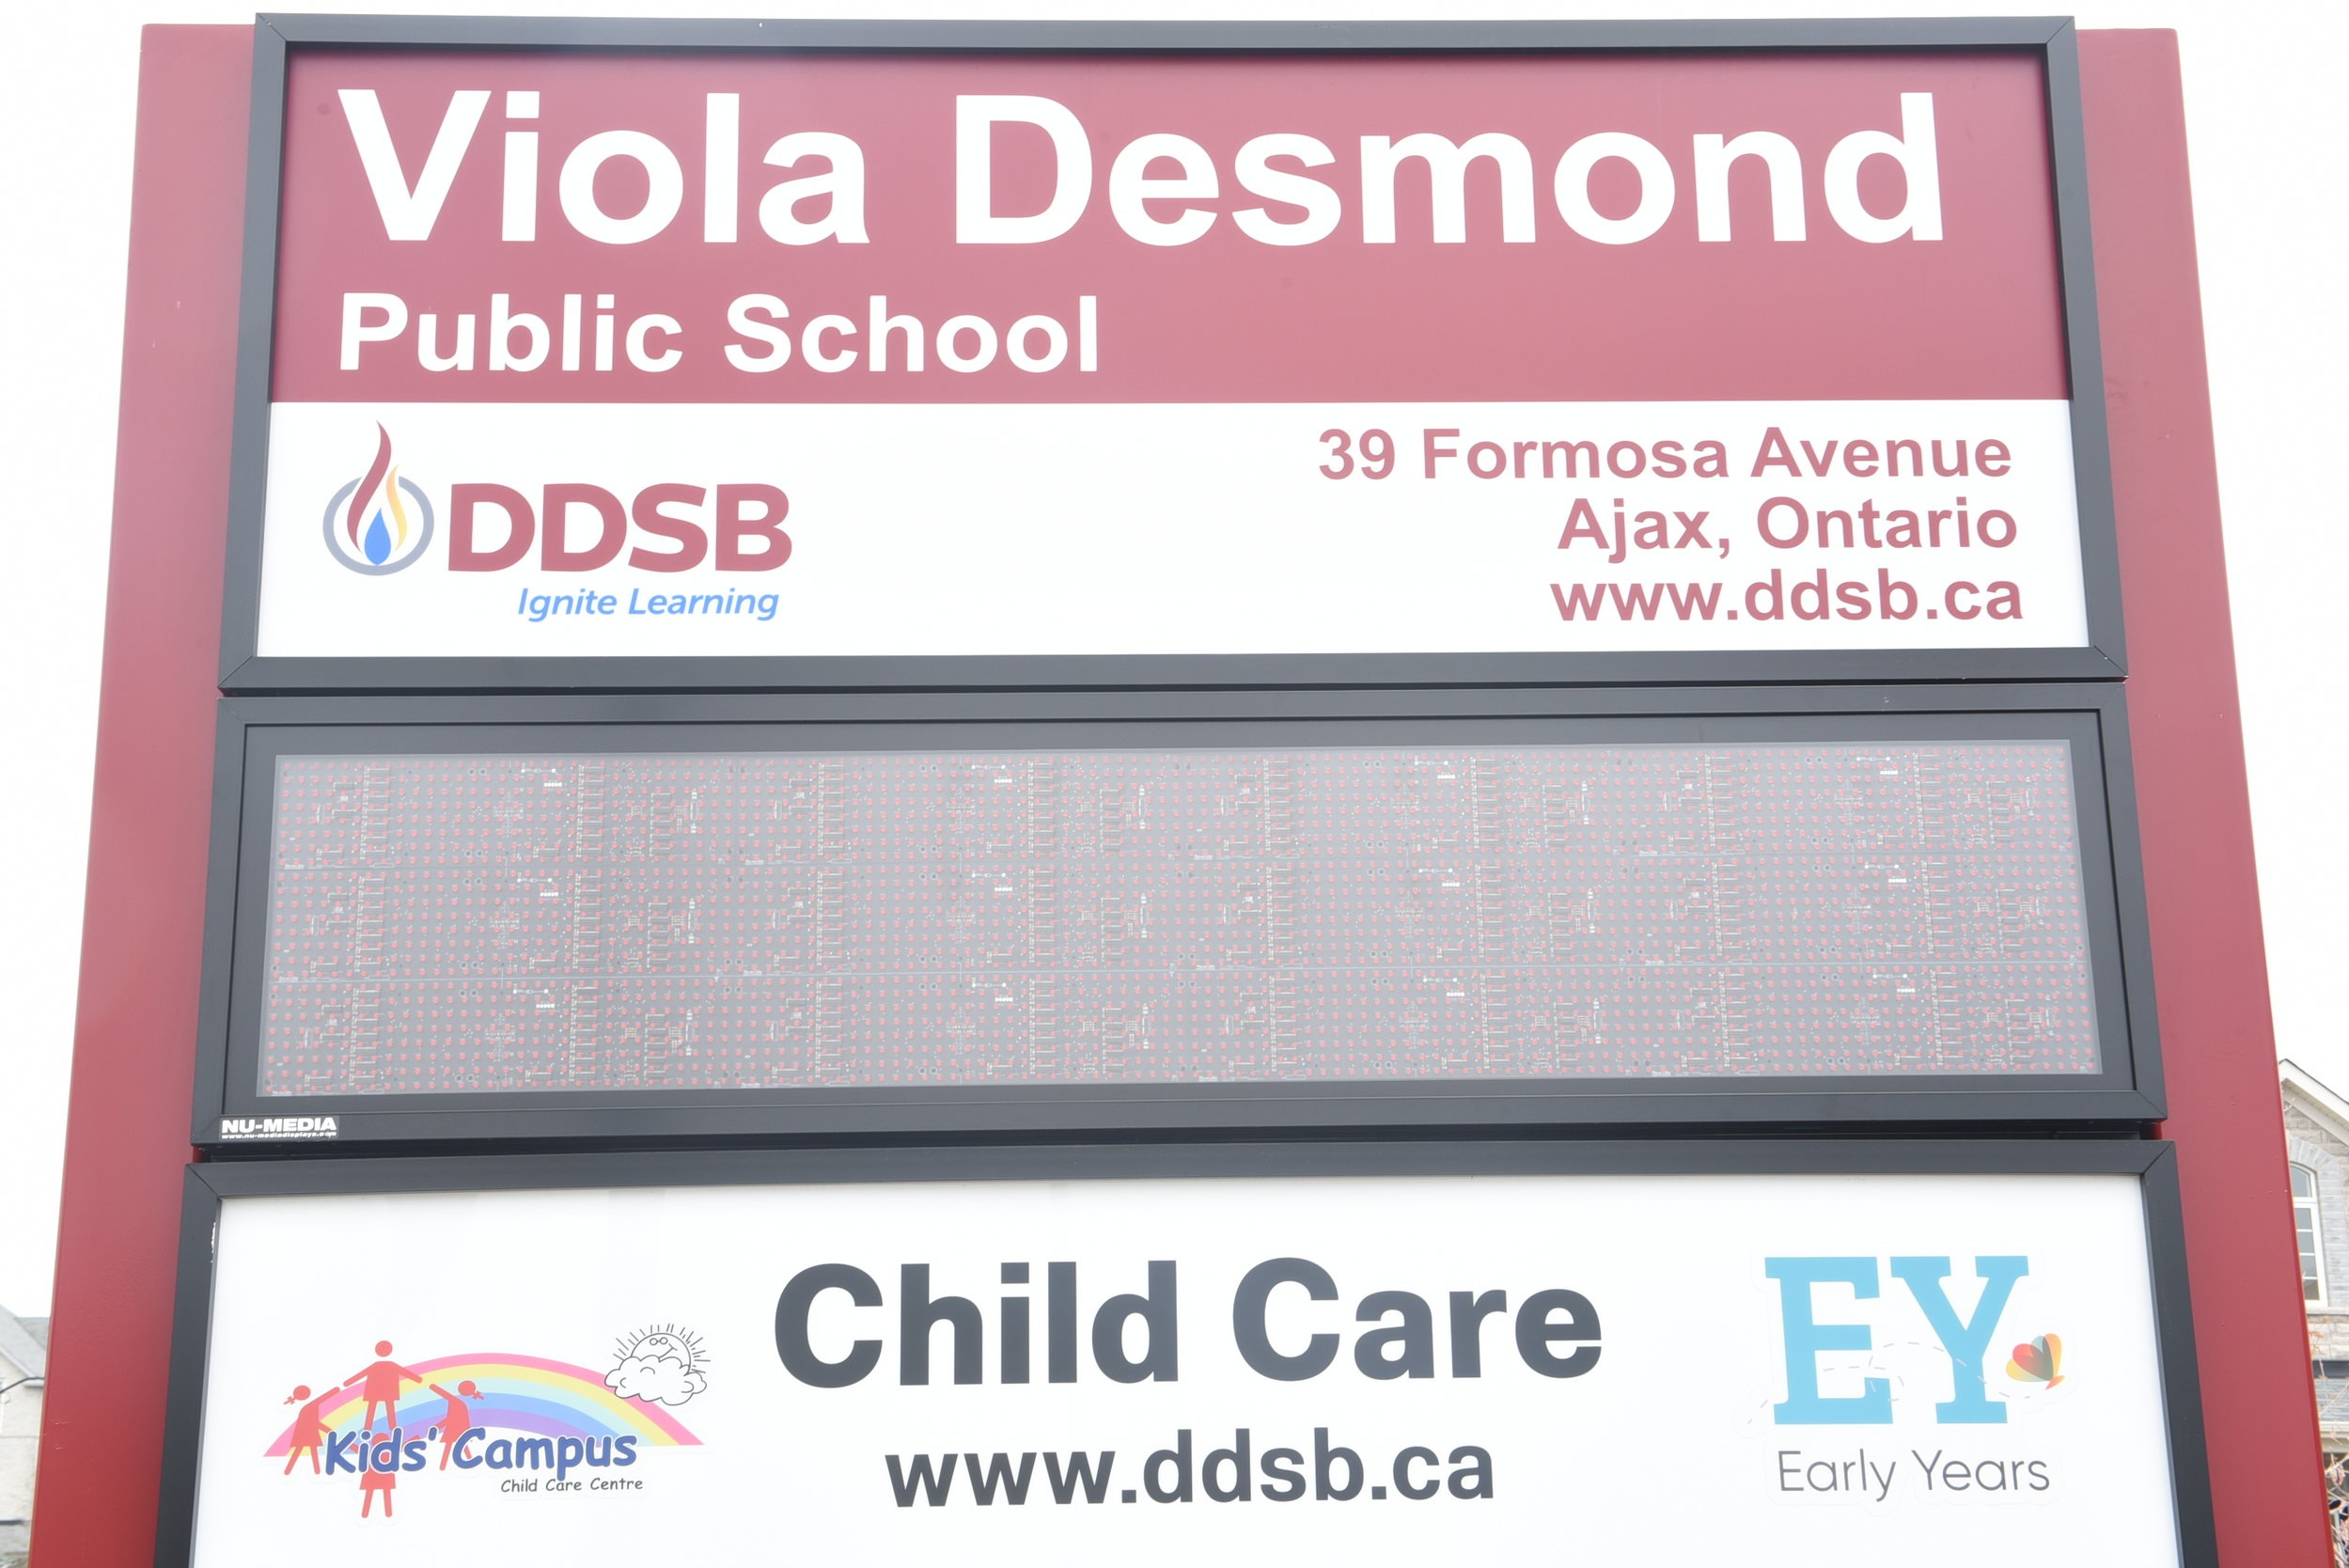 The Viola Desmond School in Ajax